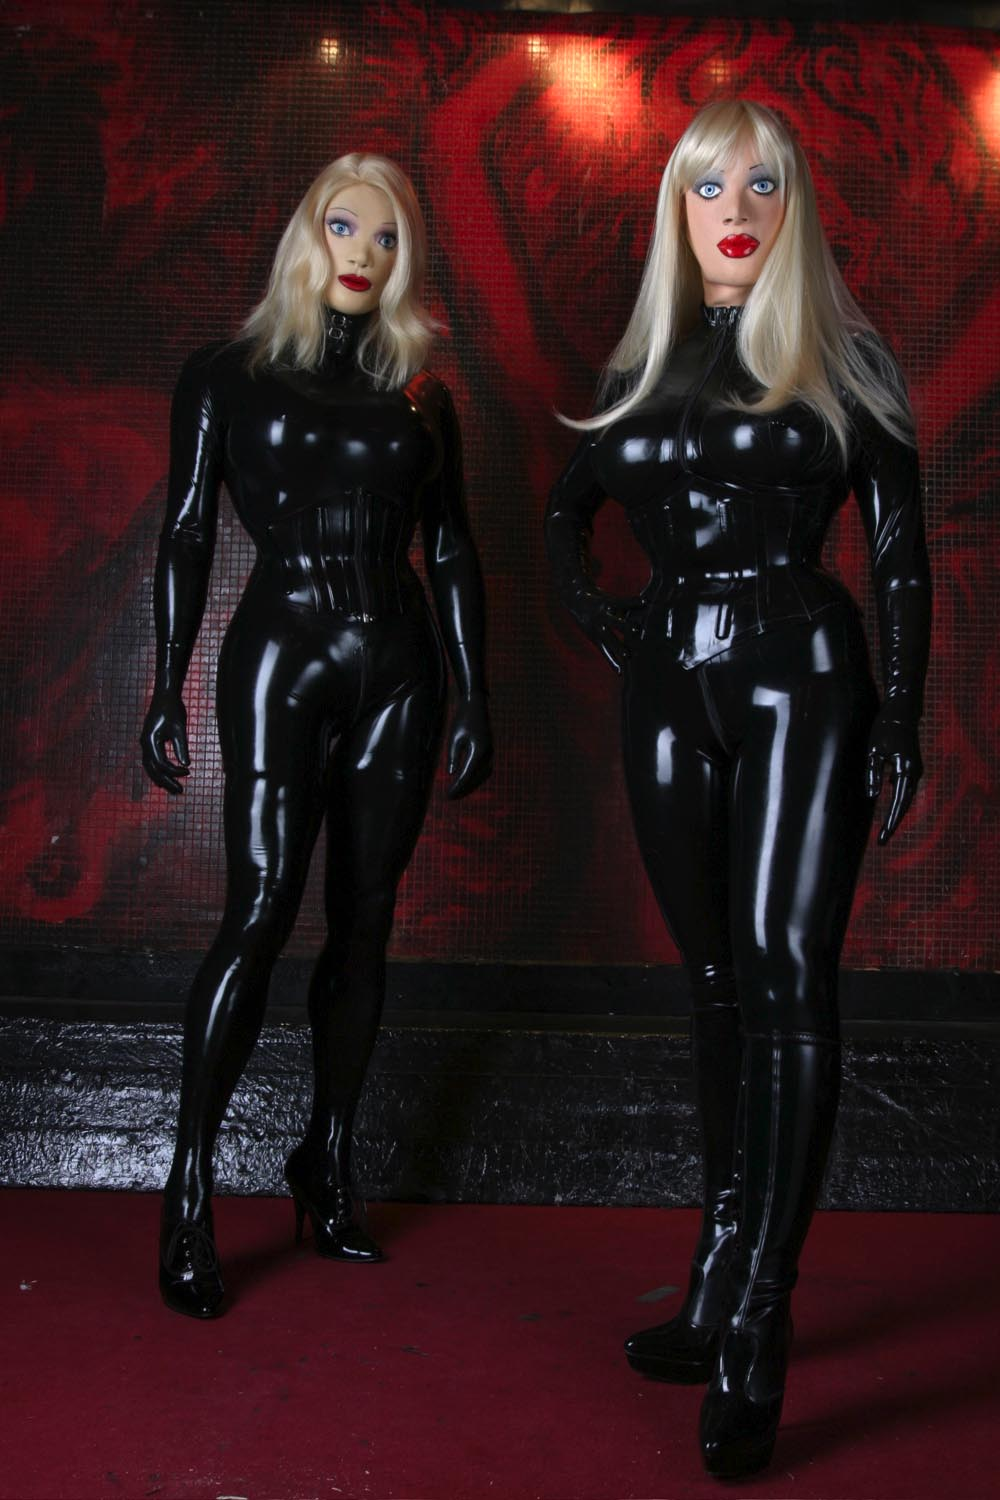 Dolls realm: the Rubber Sisters are here!!